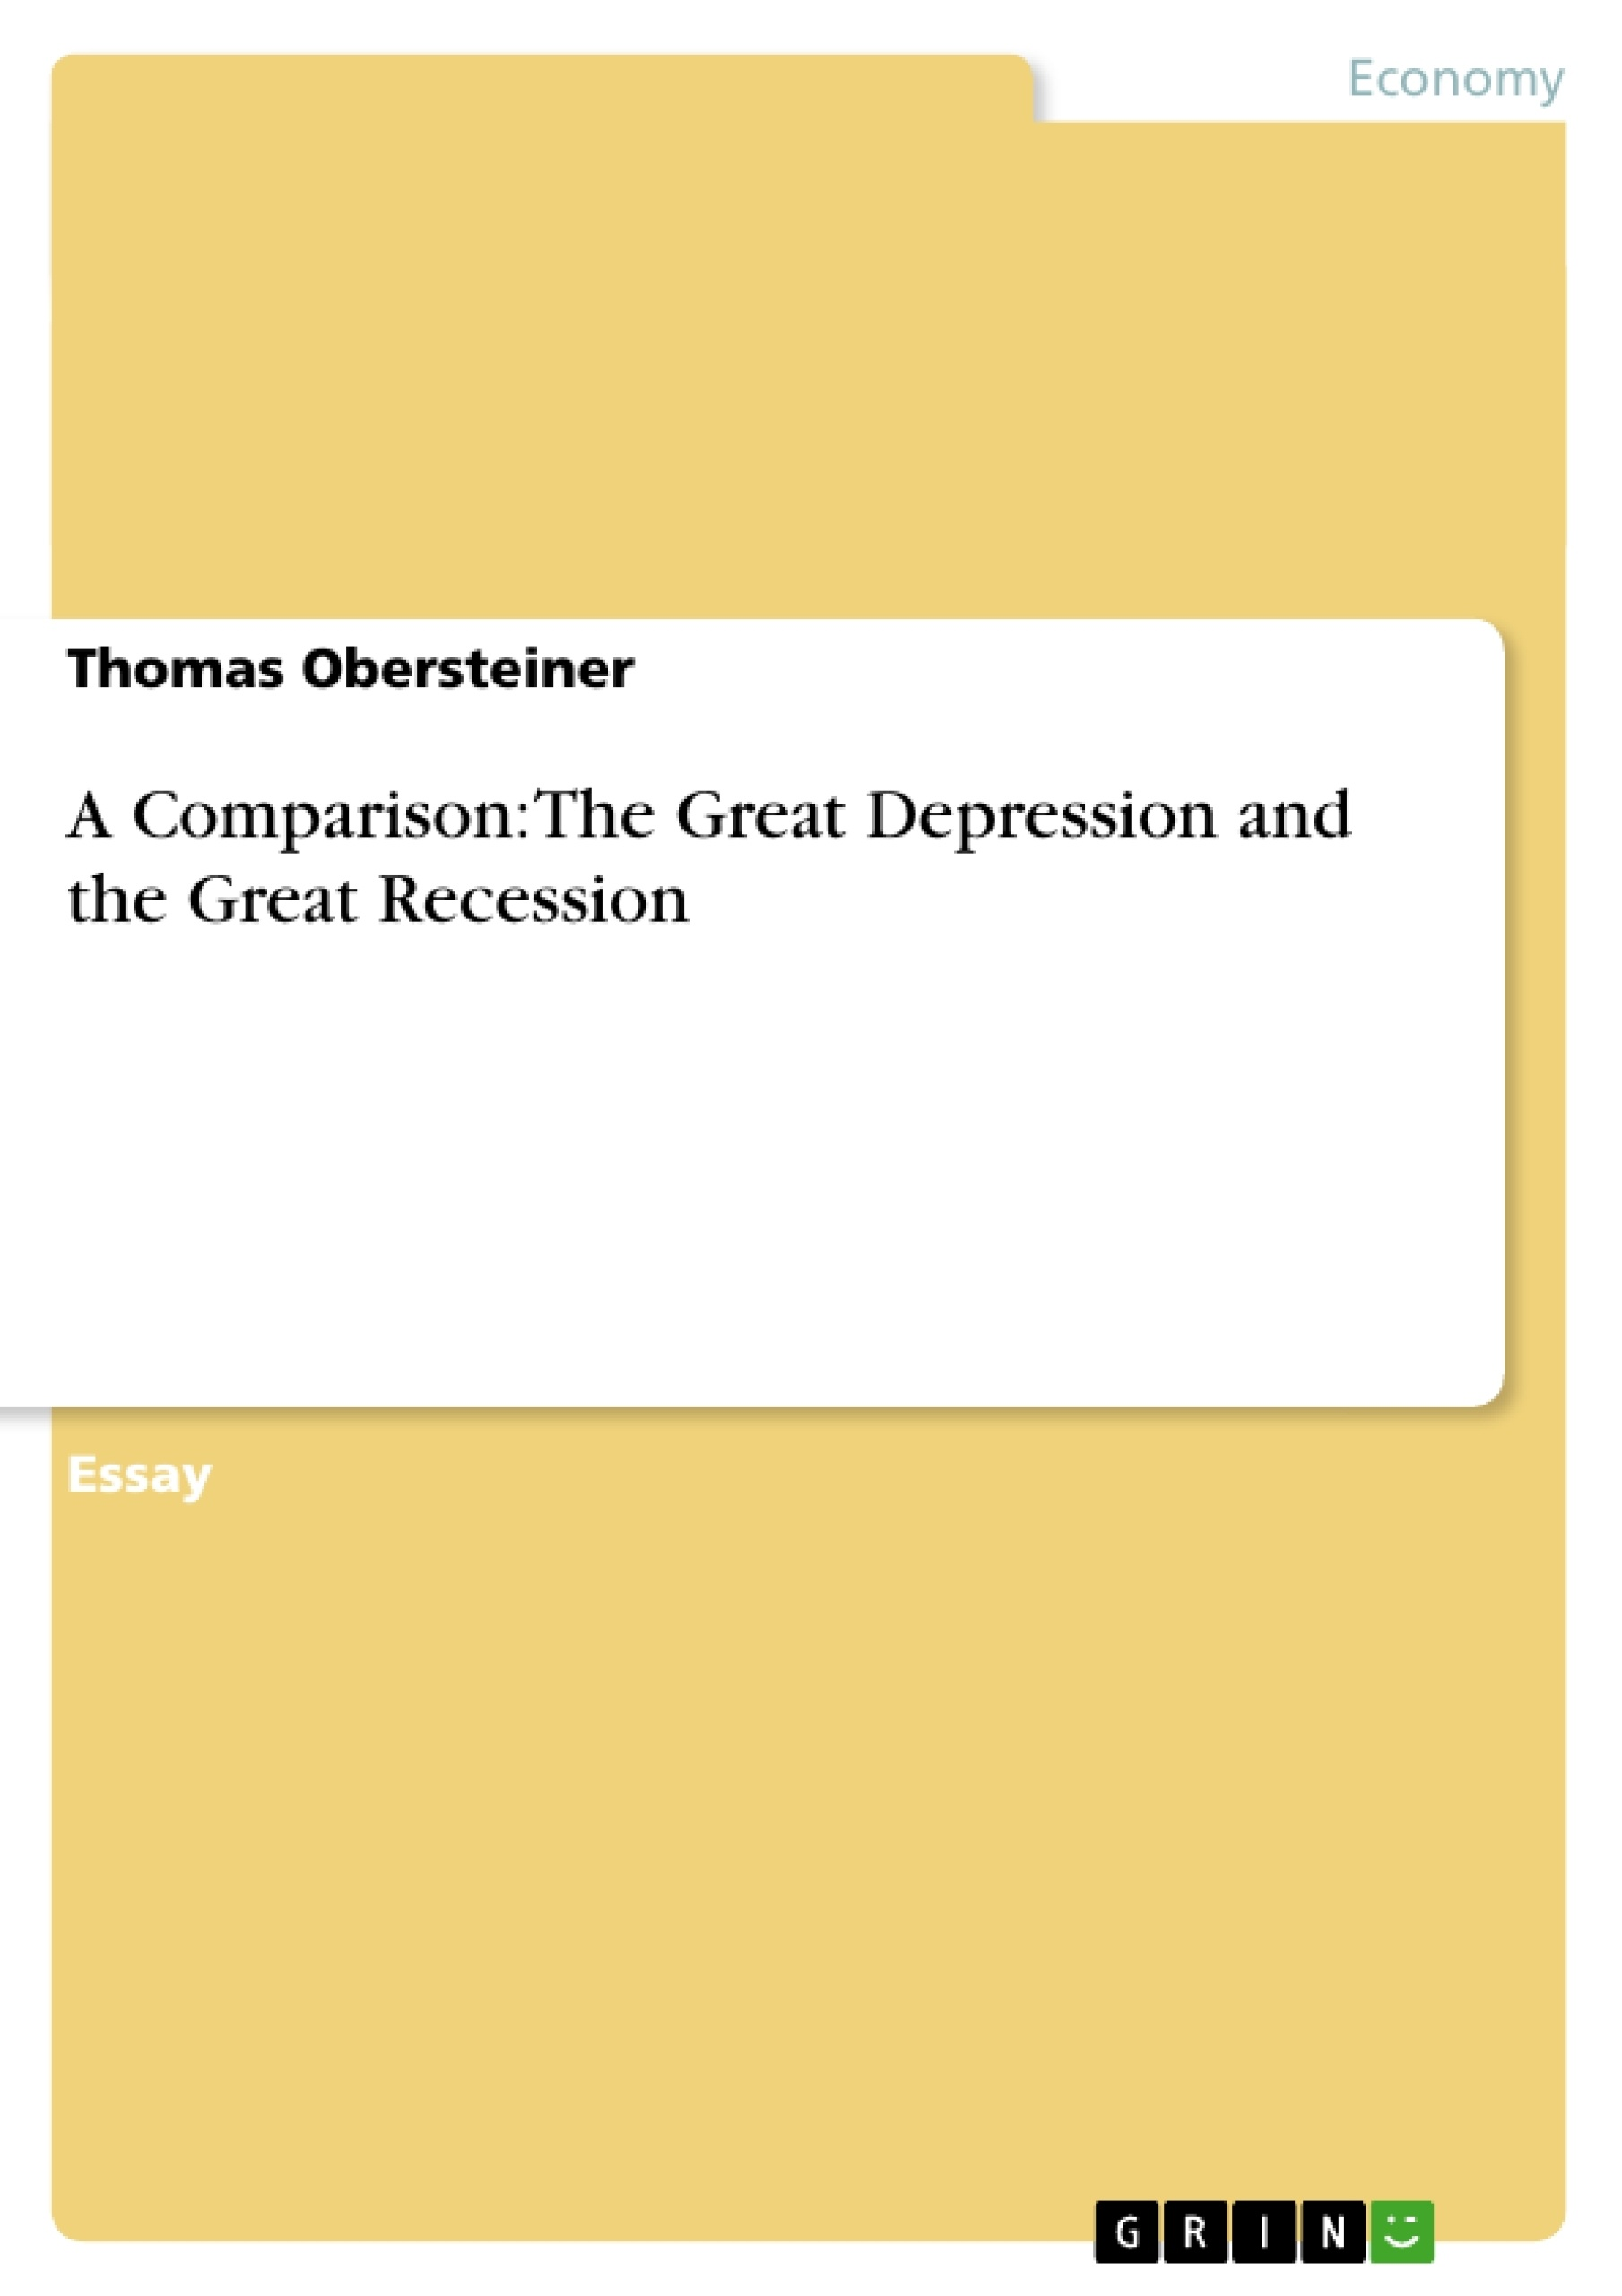 term paper recession Great recession the cause of great recession view paper ¶ great recession the cause of great recession the 2007 recession comes out as a.